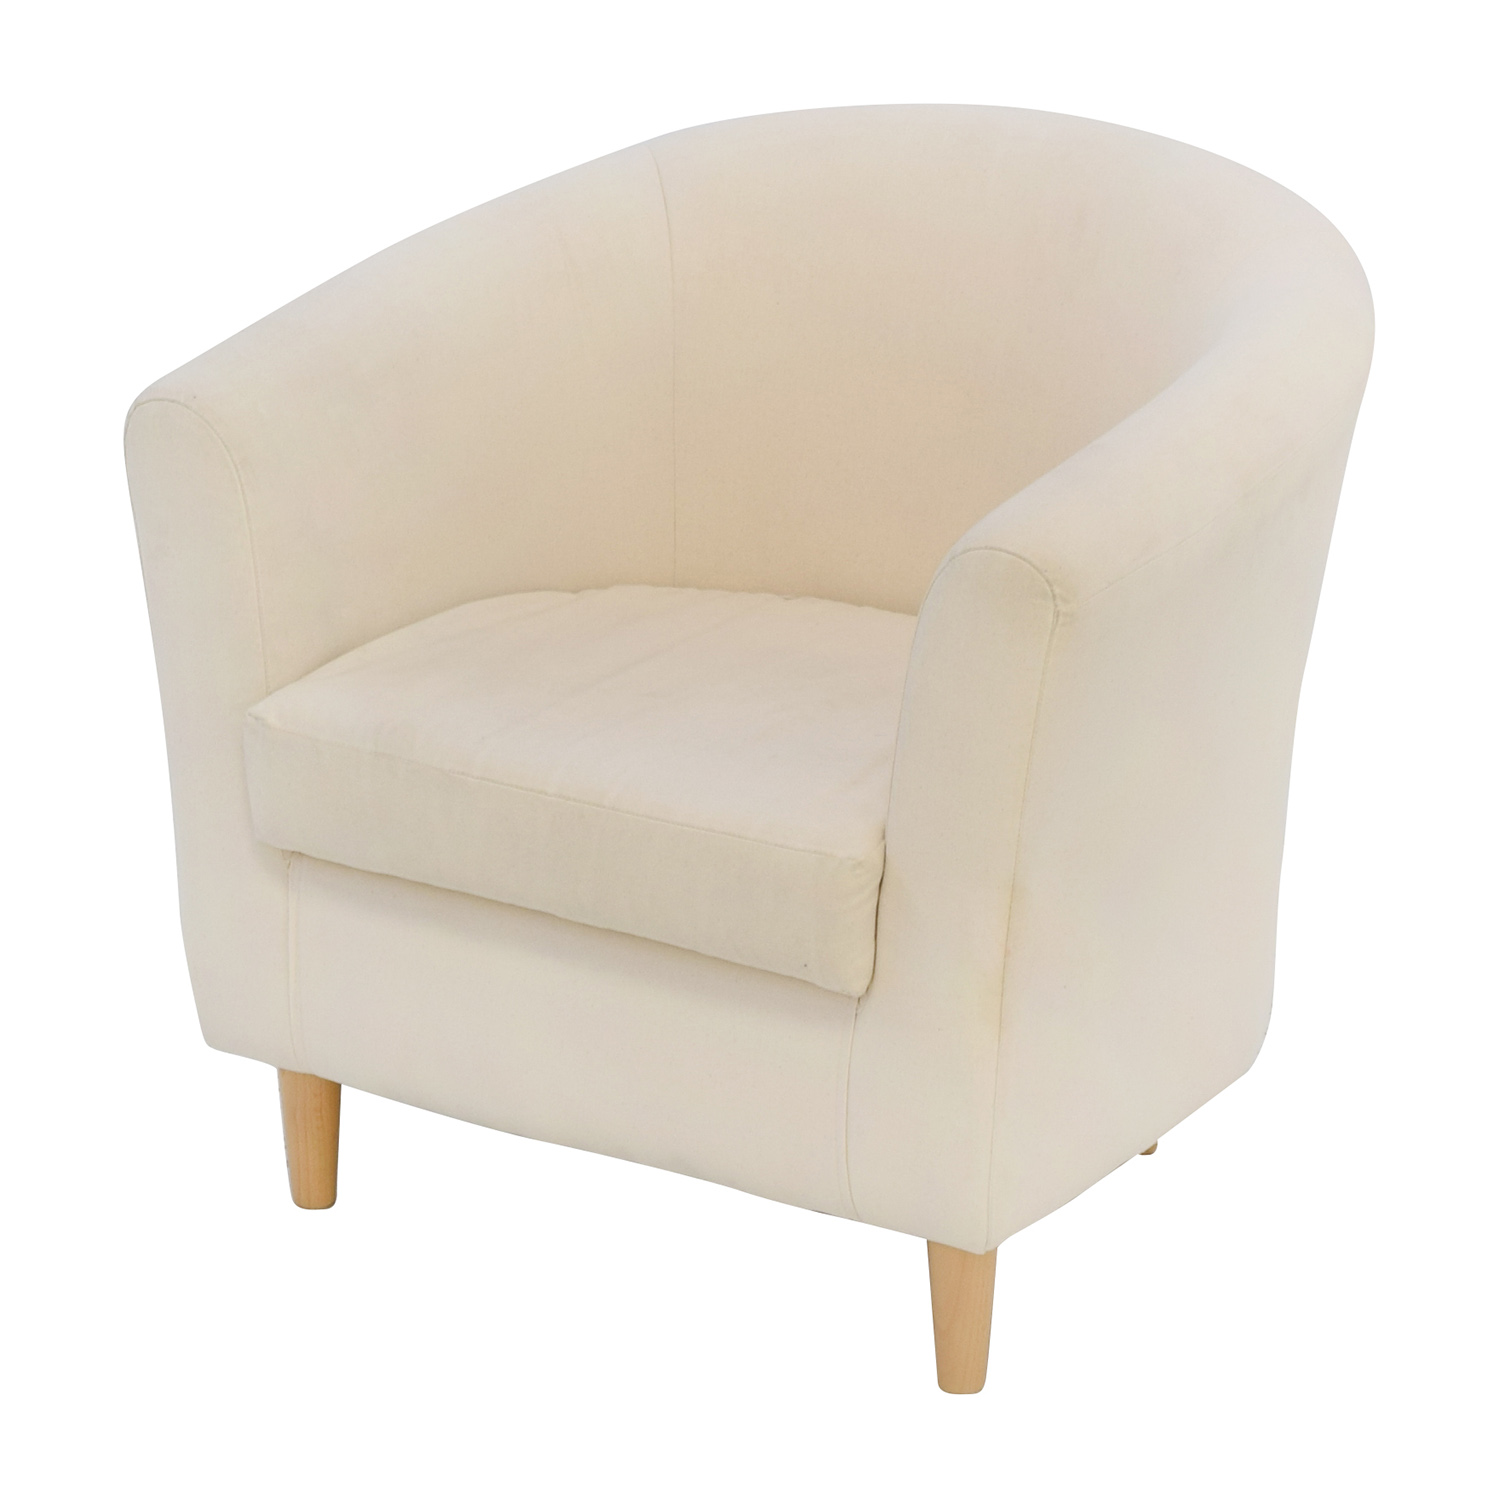 68 OFF  Cream Accent Chair  Chairs